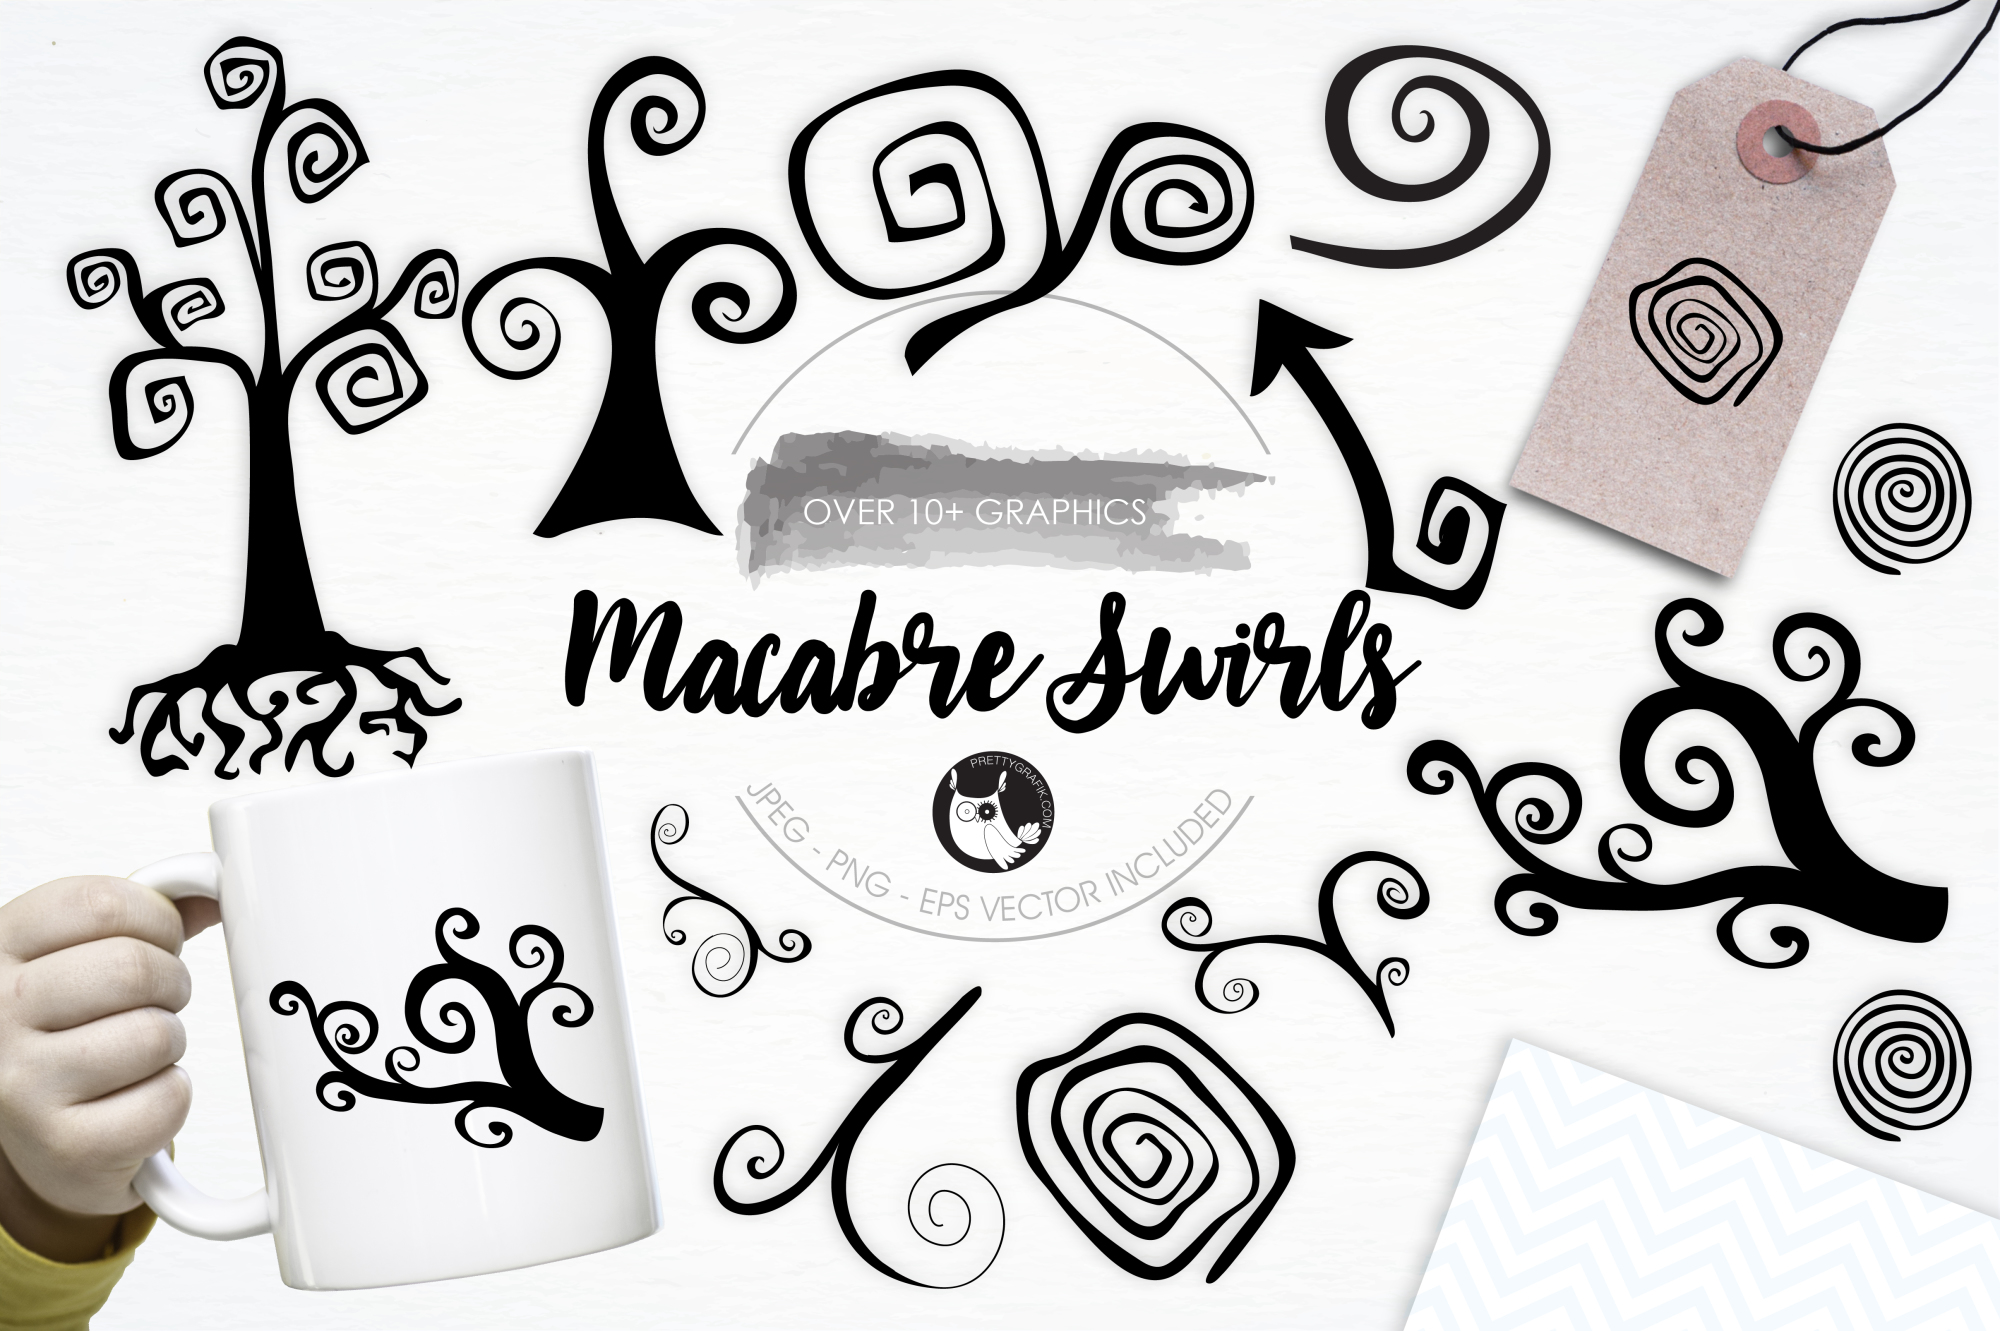 Macambre Swirls graphics and illustrations example image 1